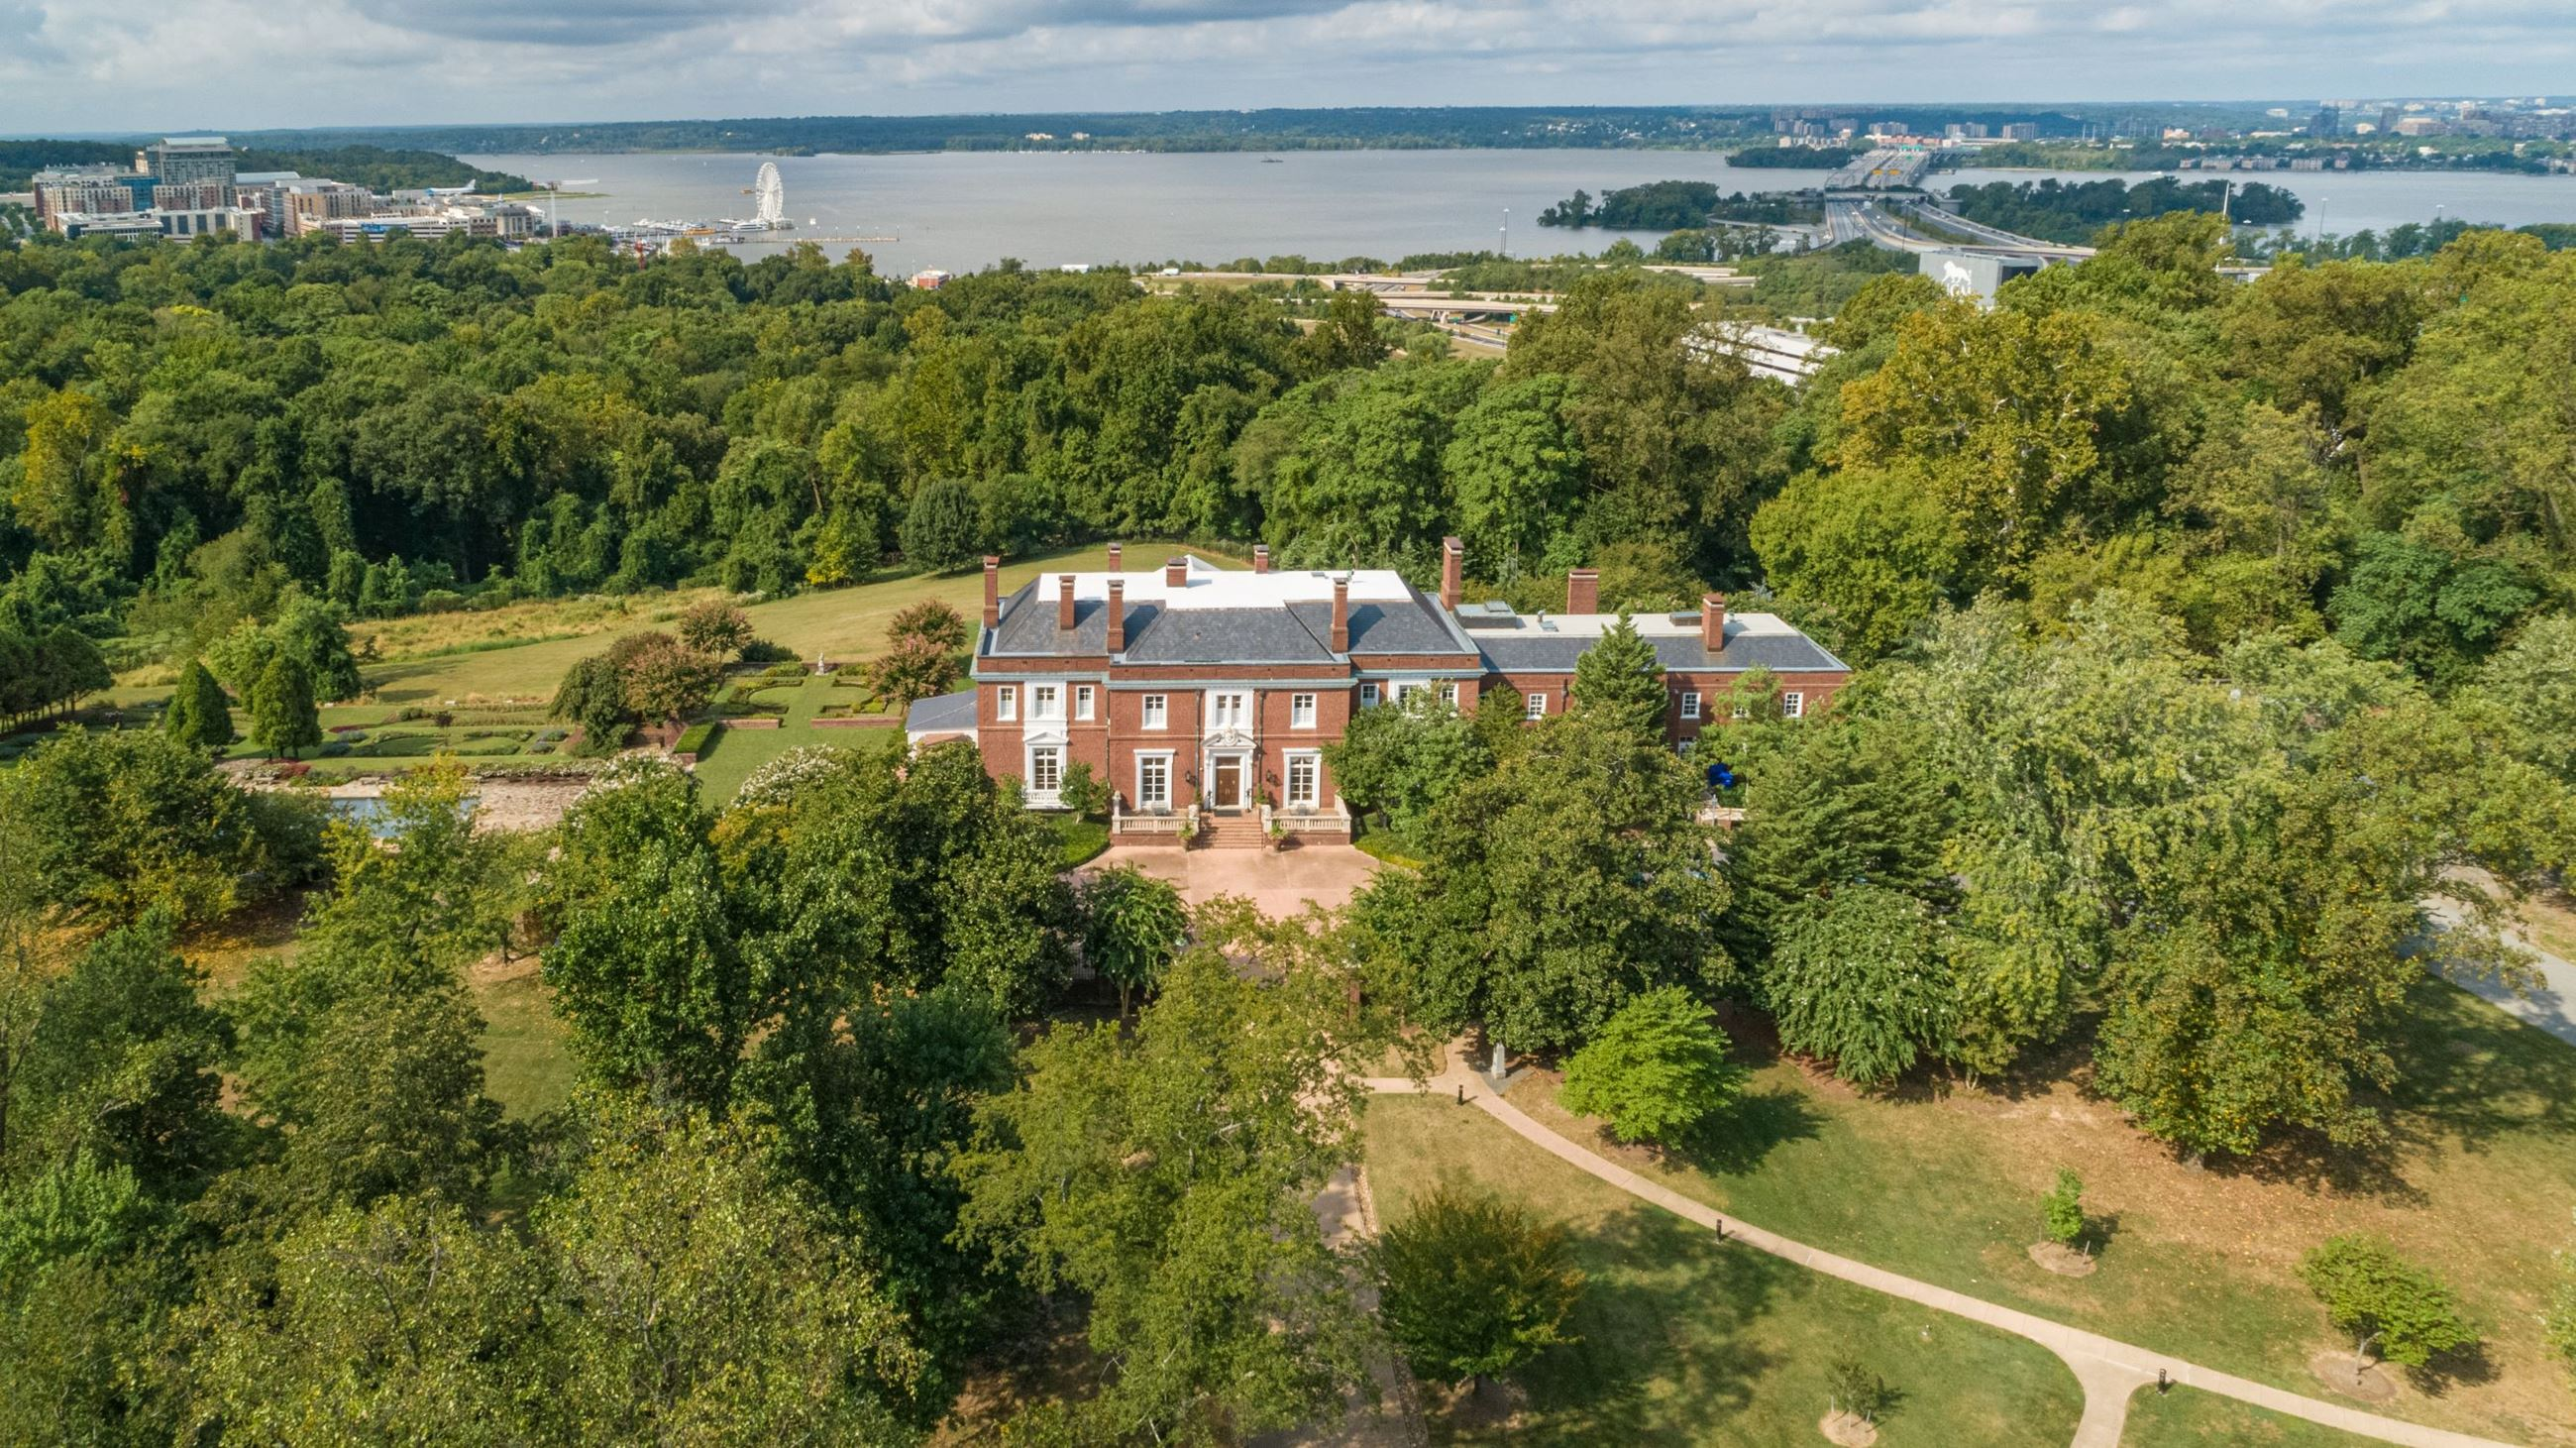 Oxon Hill Manor Aerial